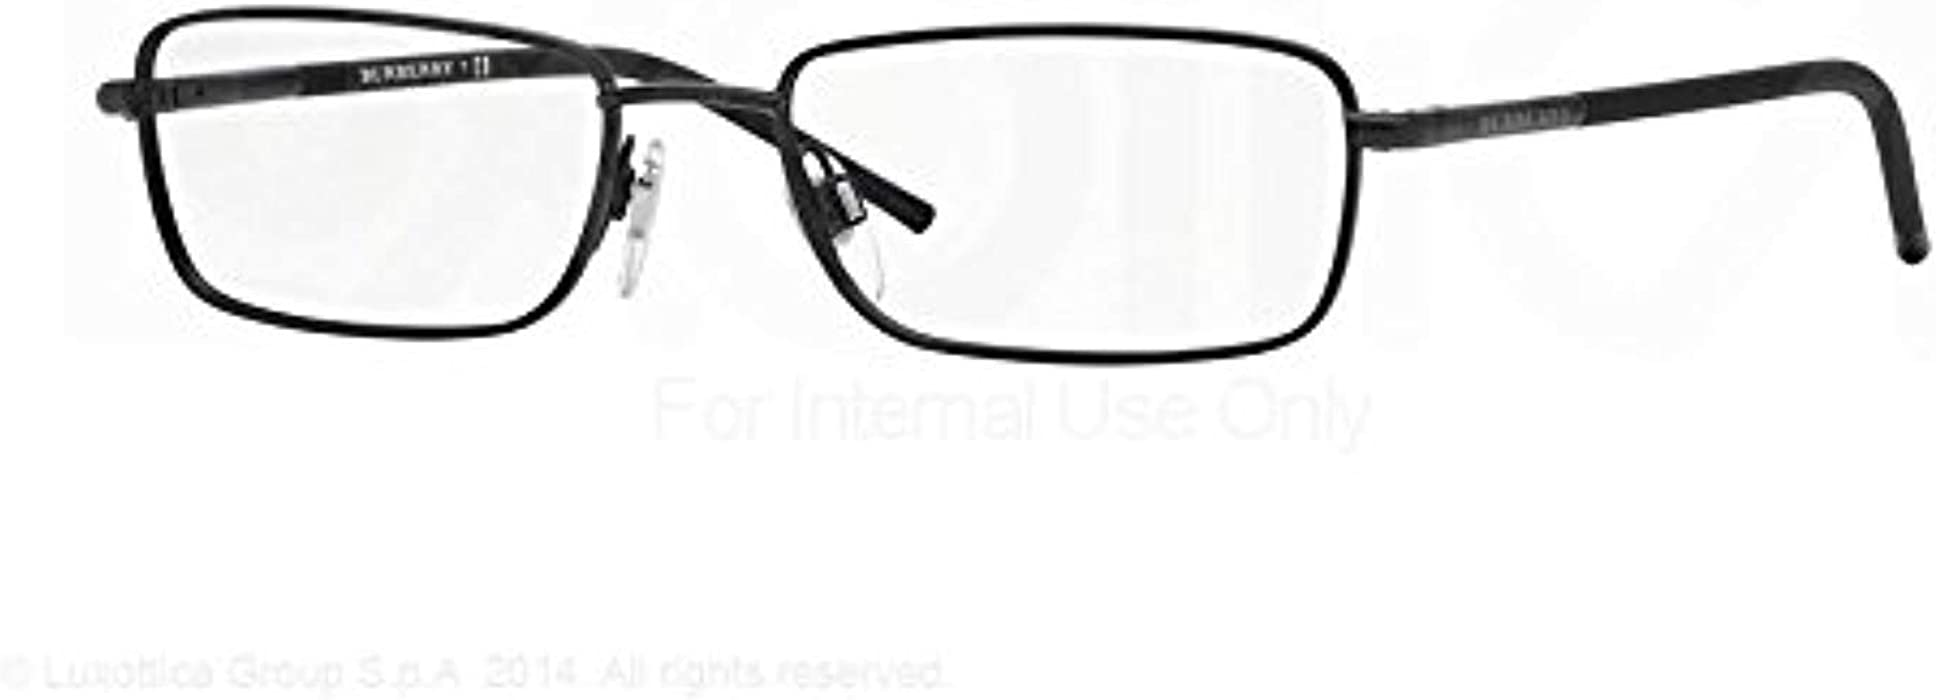 67253b7152c Amazon.com  Burberry Men s BE1268 Eyeglasses Matte Black 52mm  Shoes